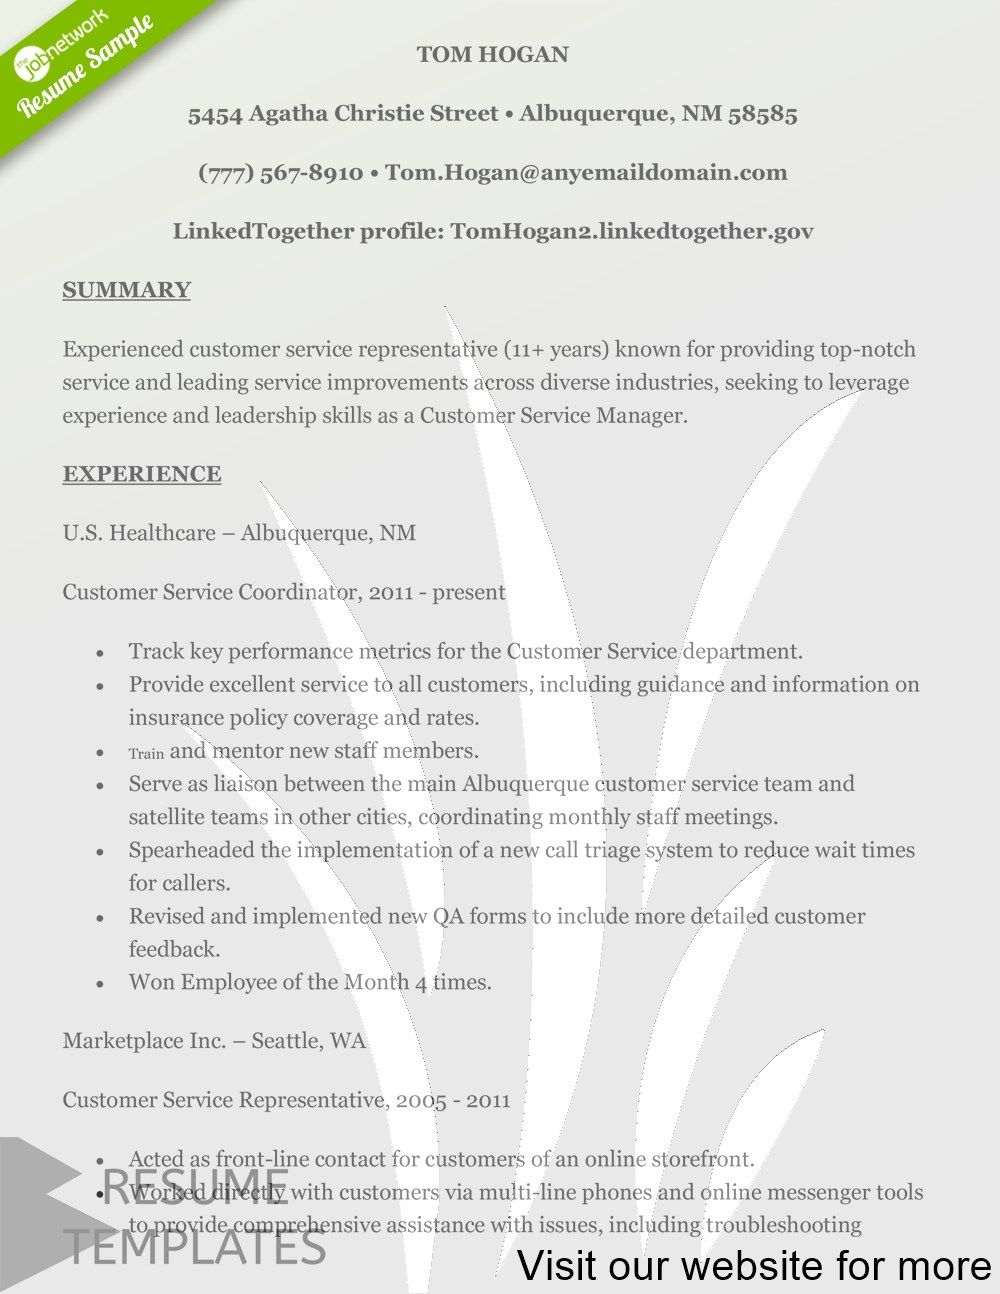 resume template free ai 2020 in 2020 Customer service